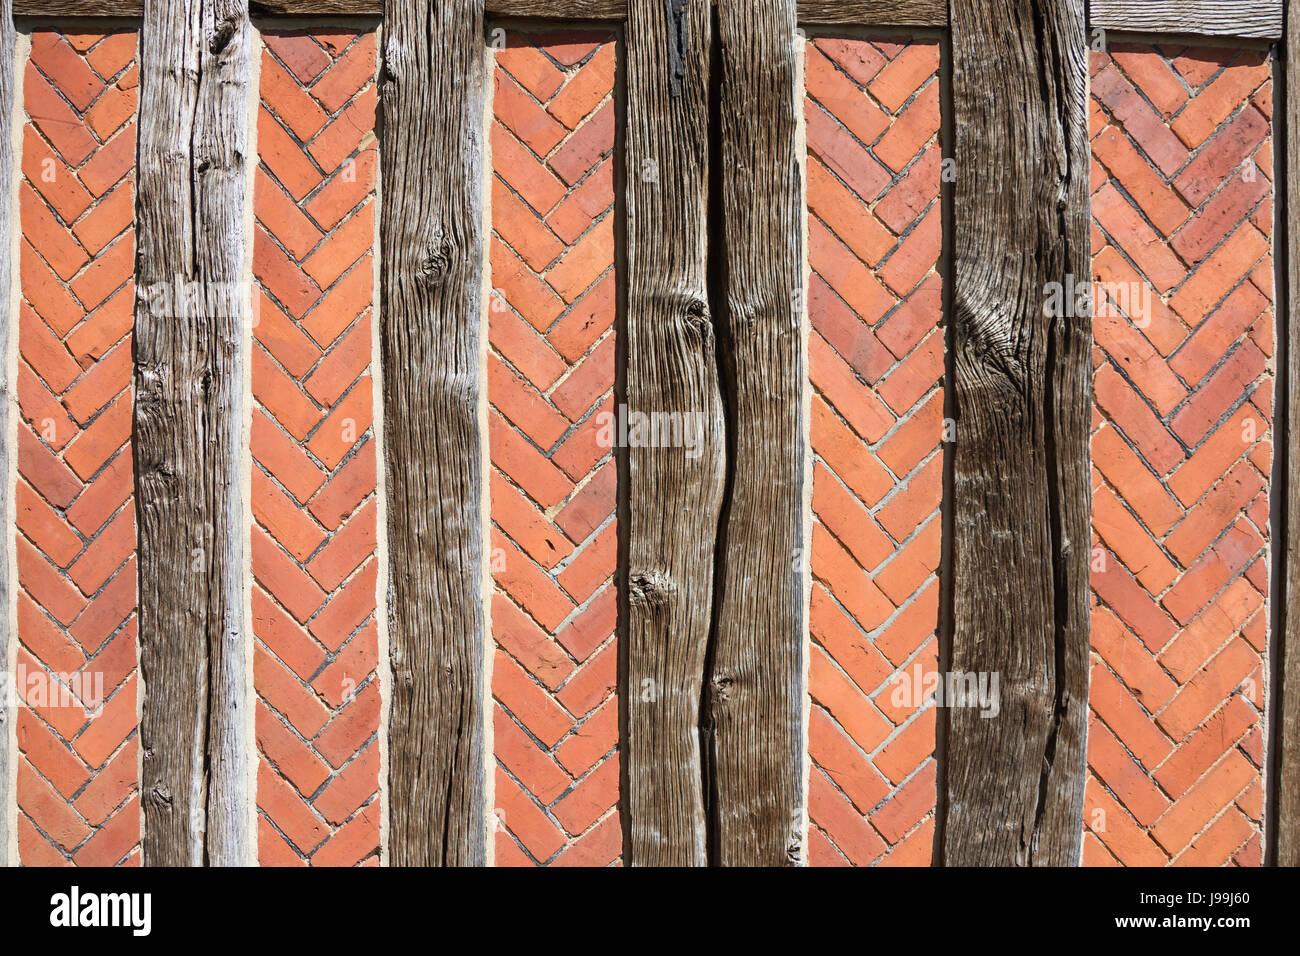 Ancient beams and brickwork on walls of St Peter's Church, Oaklands, Yateley, Hampshire, England, United Kingdom - Stock Image